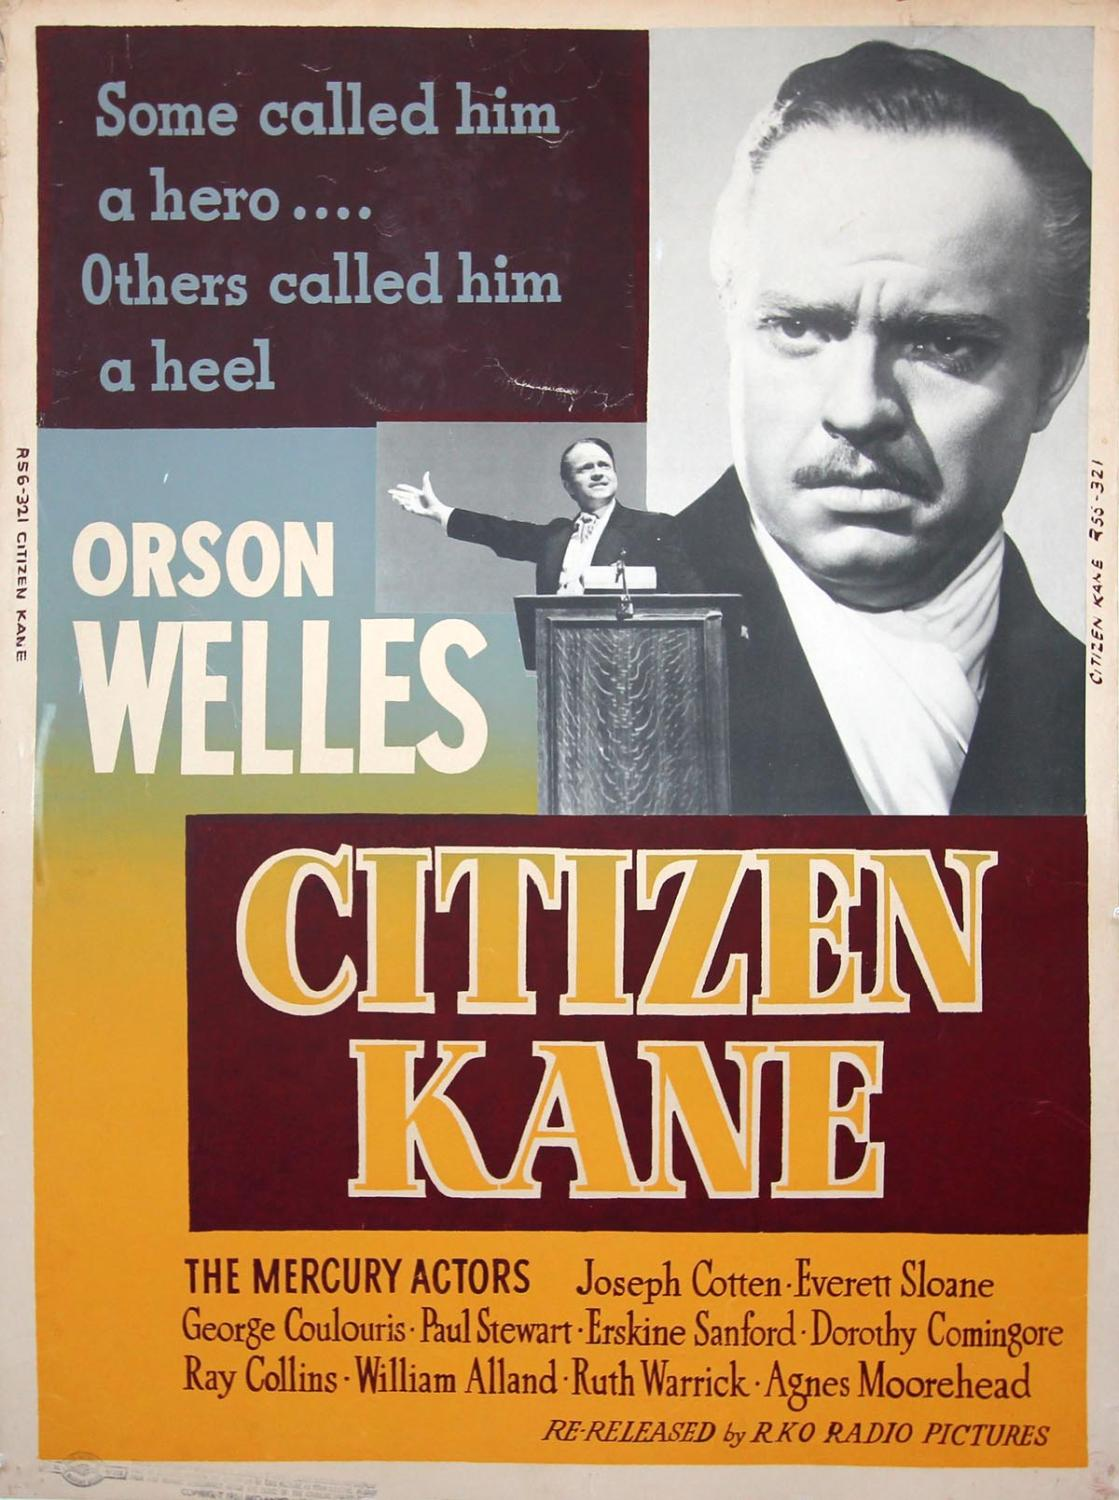 CITIZEN KANE (1941; 1956 reissue): Welles, Orson (director)